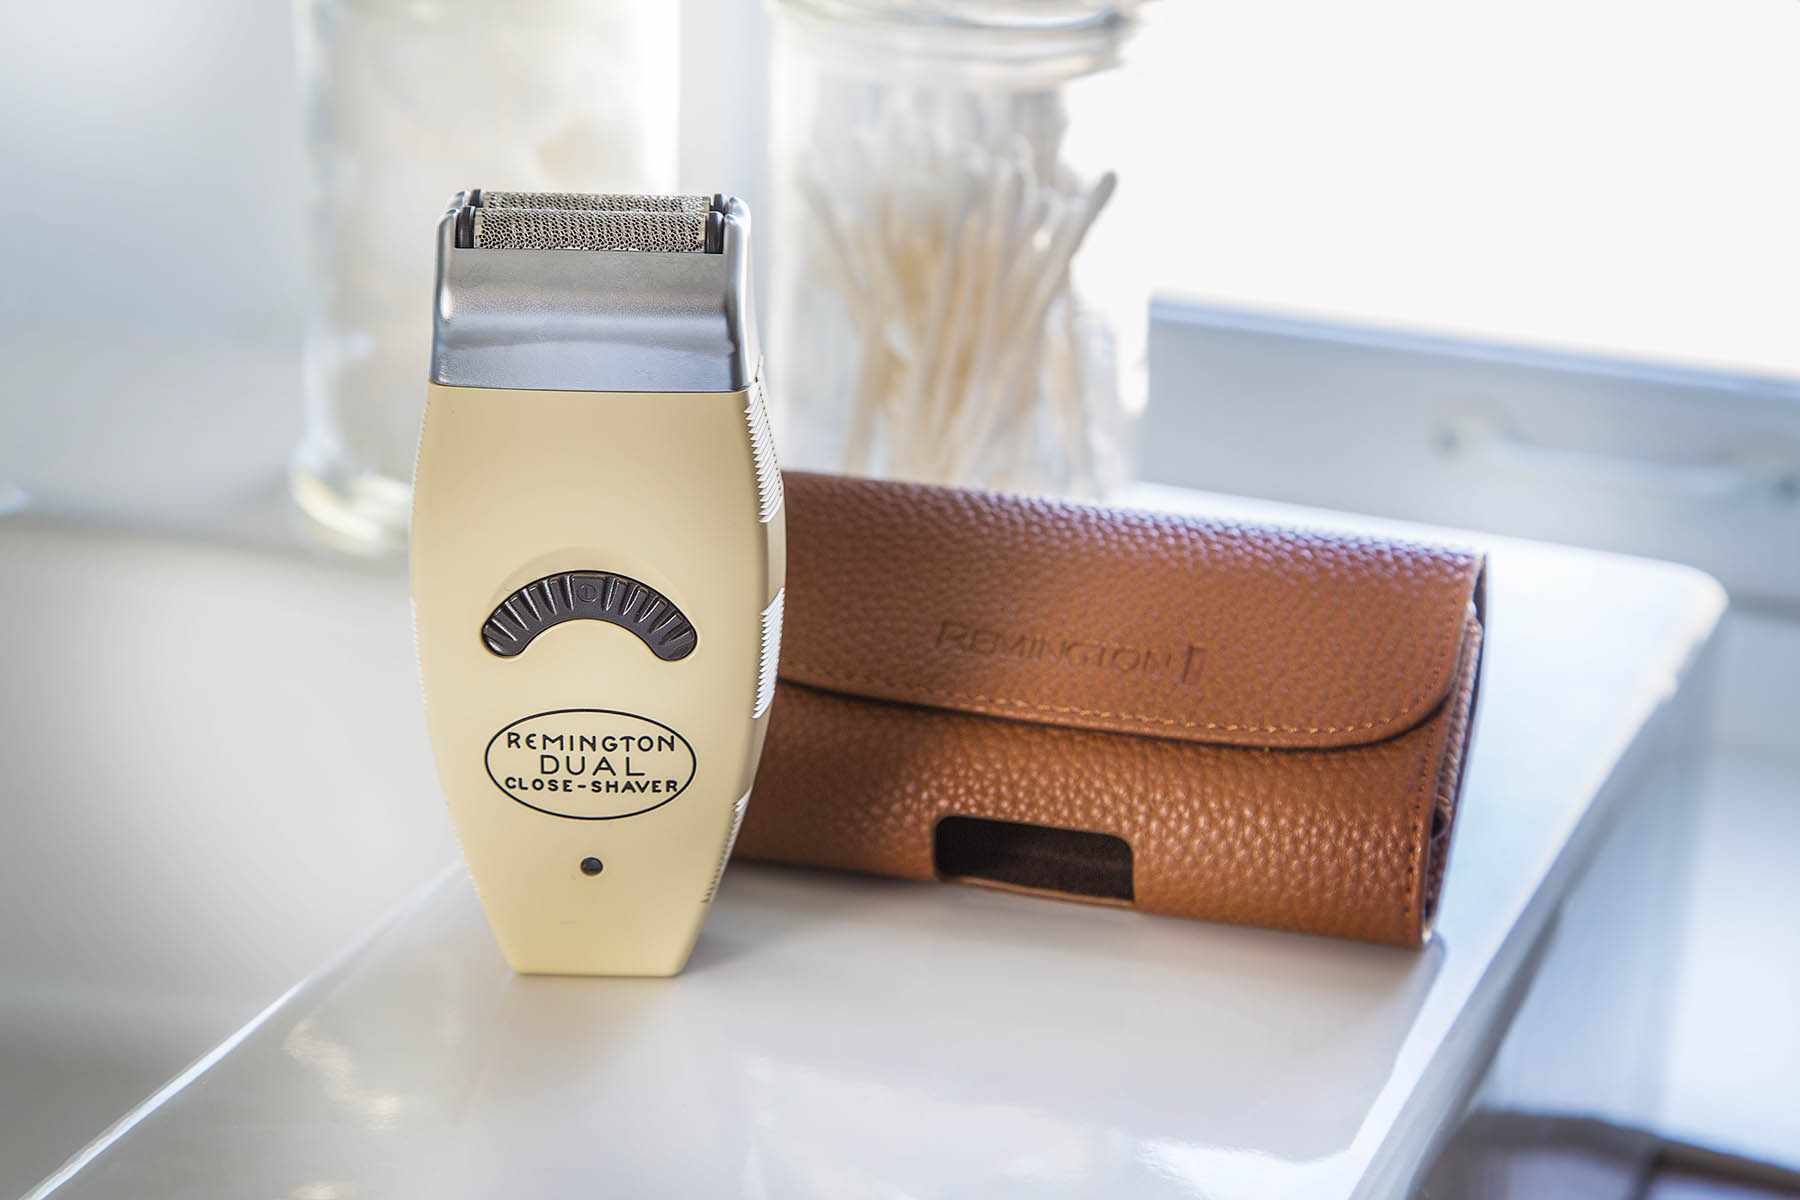 Remington – Retro Shaver